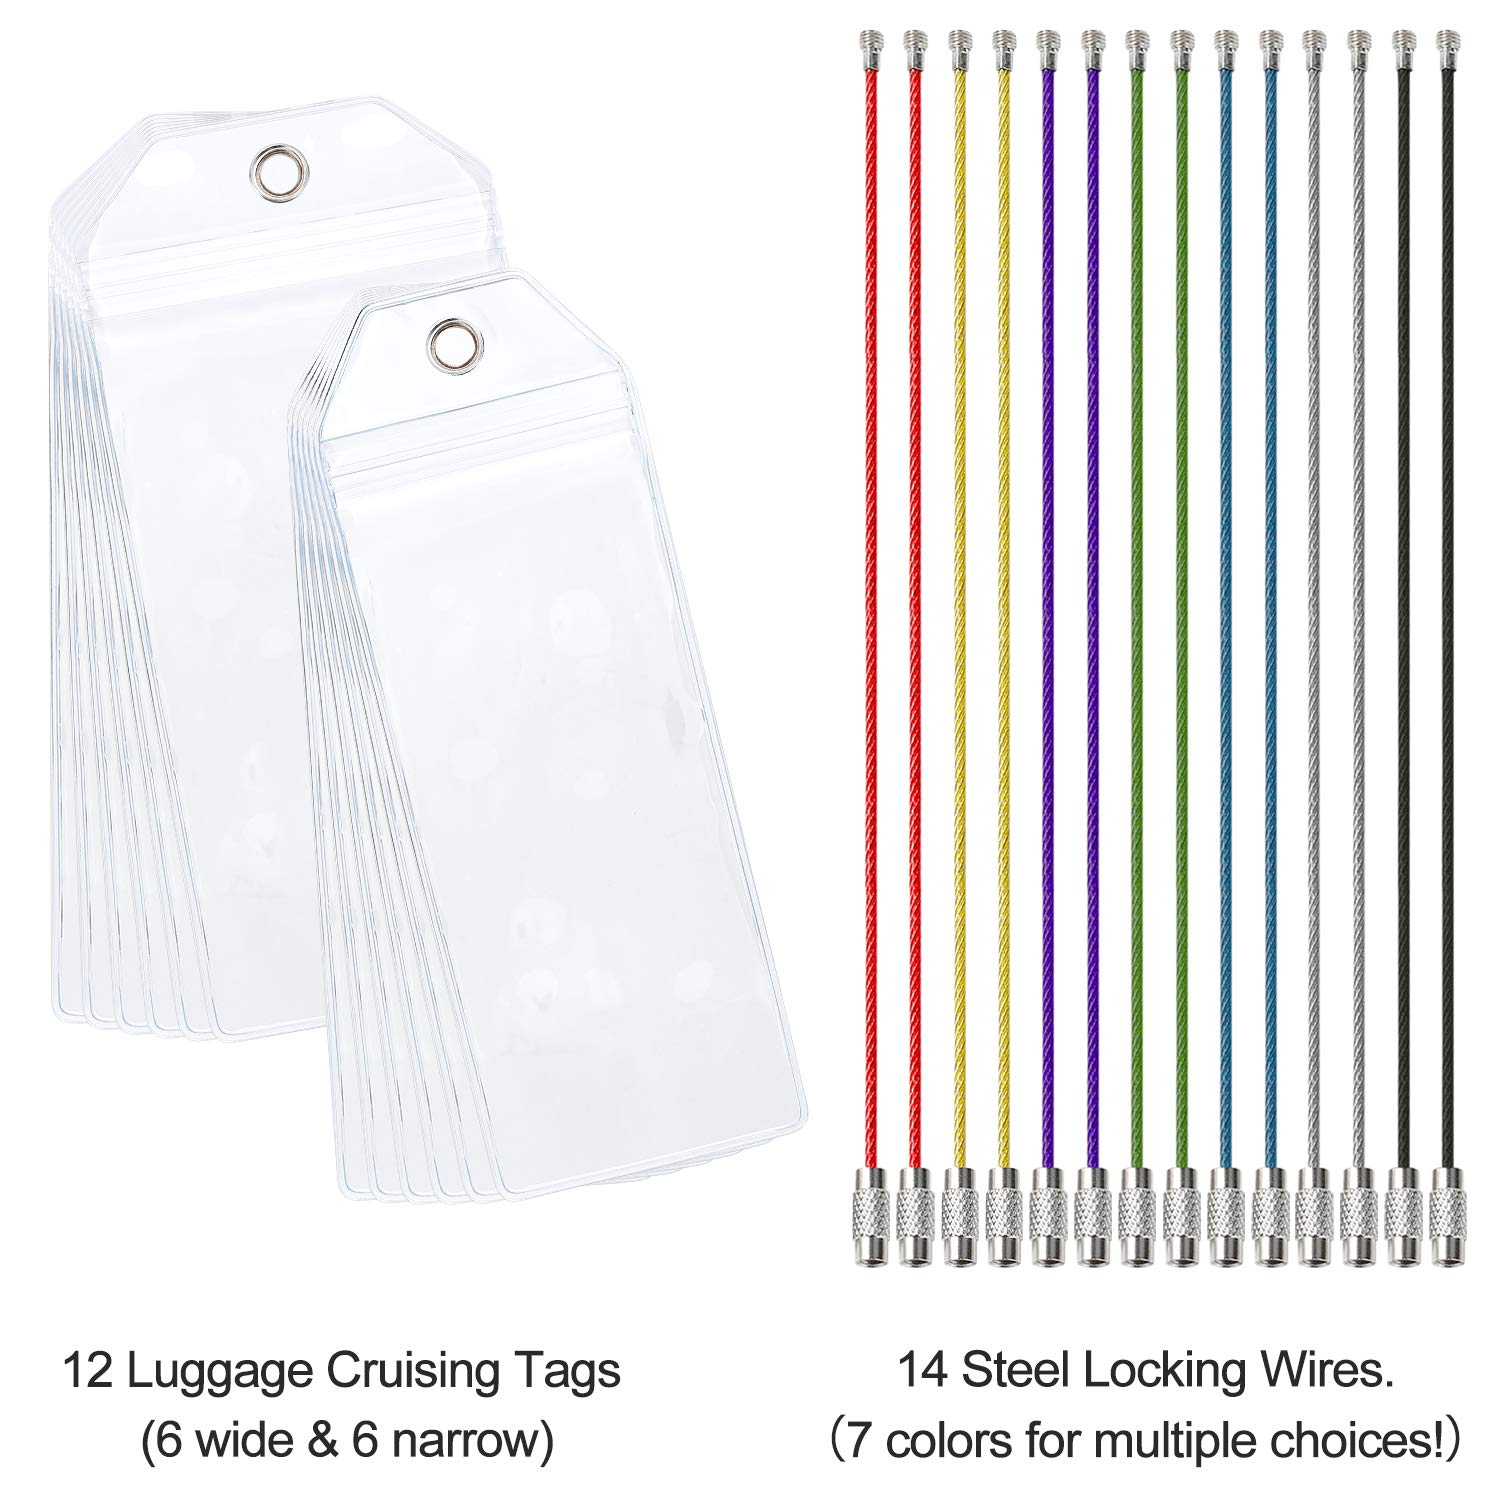 Cruise Tags 12 Pack Both Sizes (Wide and Narrow) Luggage Etag Holders Zip Seal Steel Loops by Jeatonge (Image #4)